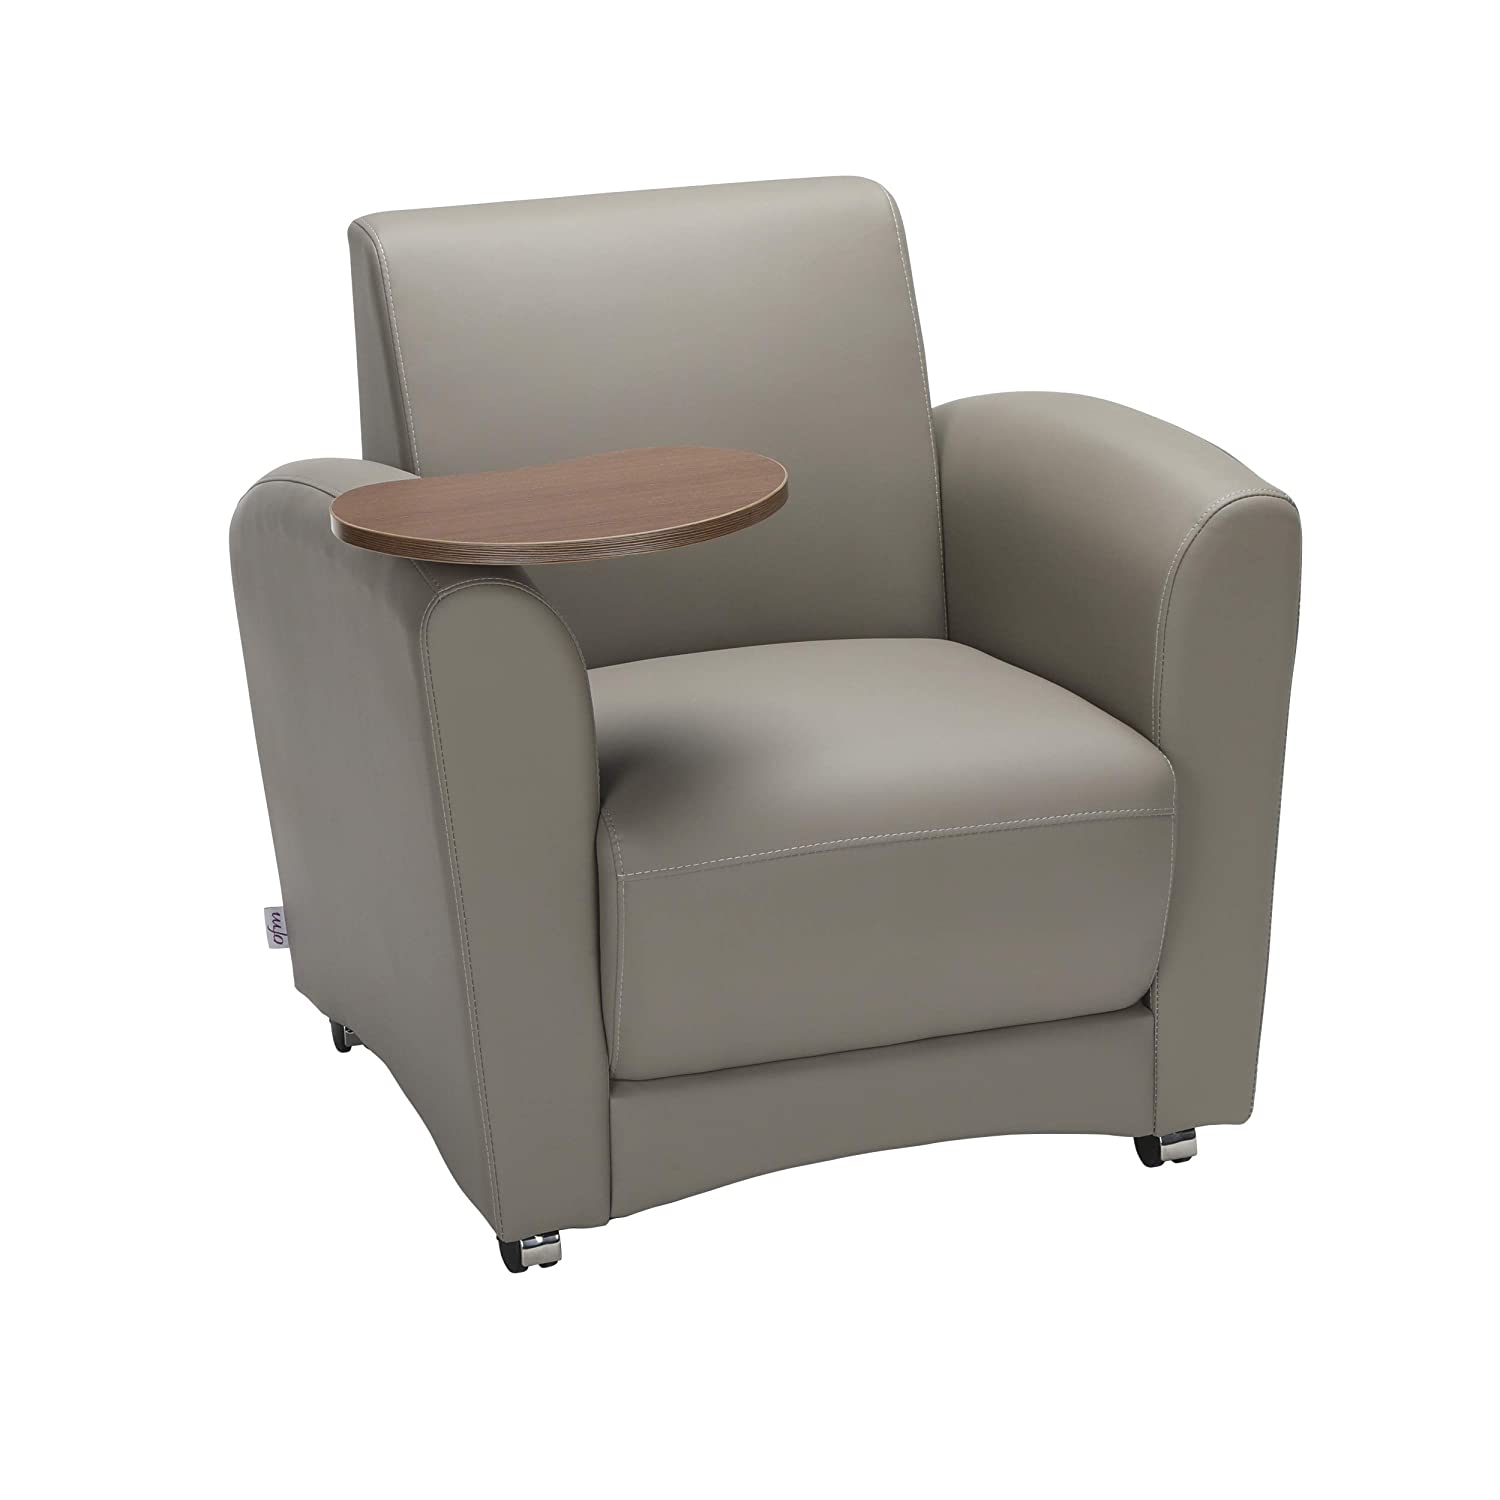 OFM Core Collection InterPlay Series Single Seat Chair with Bronze Tablet, in Taupe (821-PU607-BRONZ)